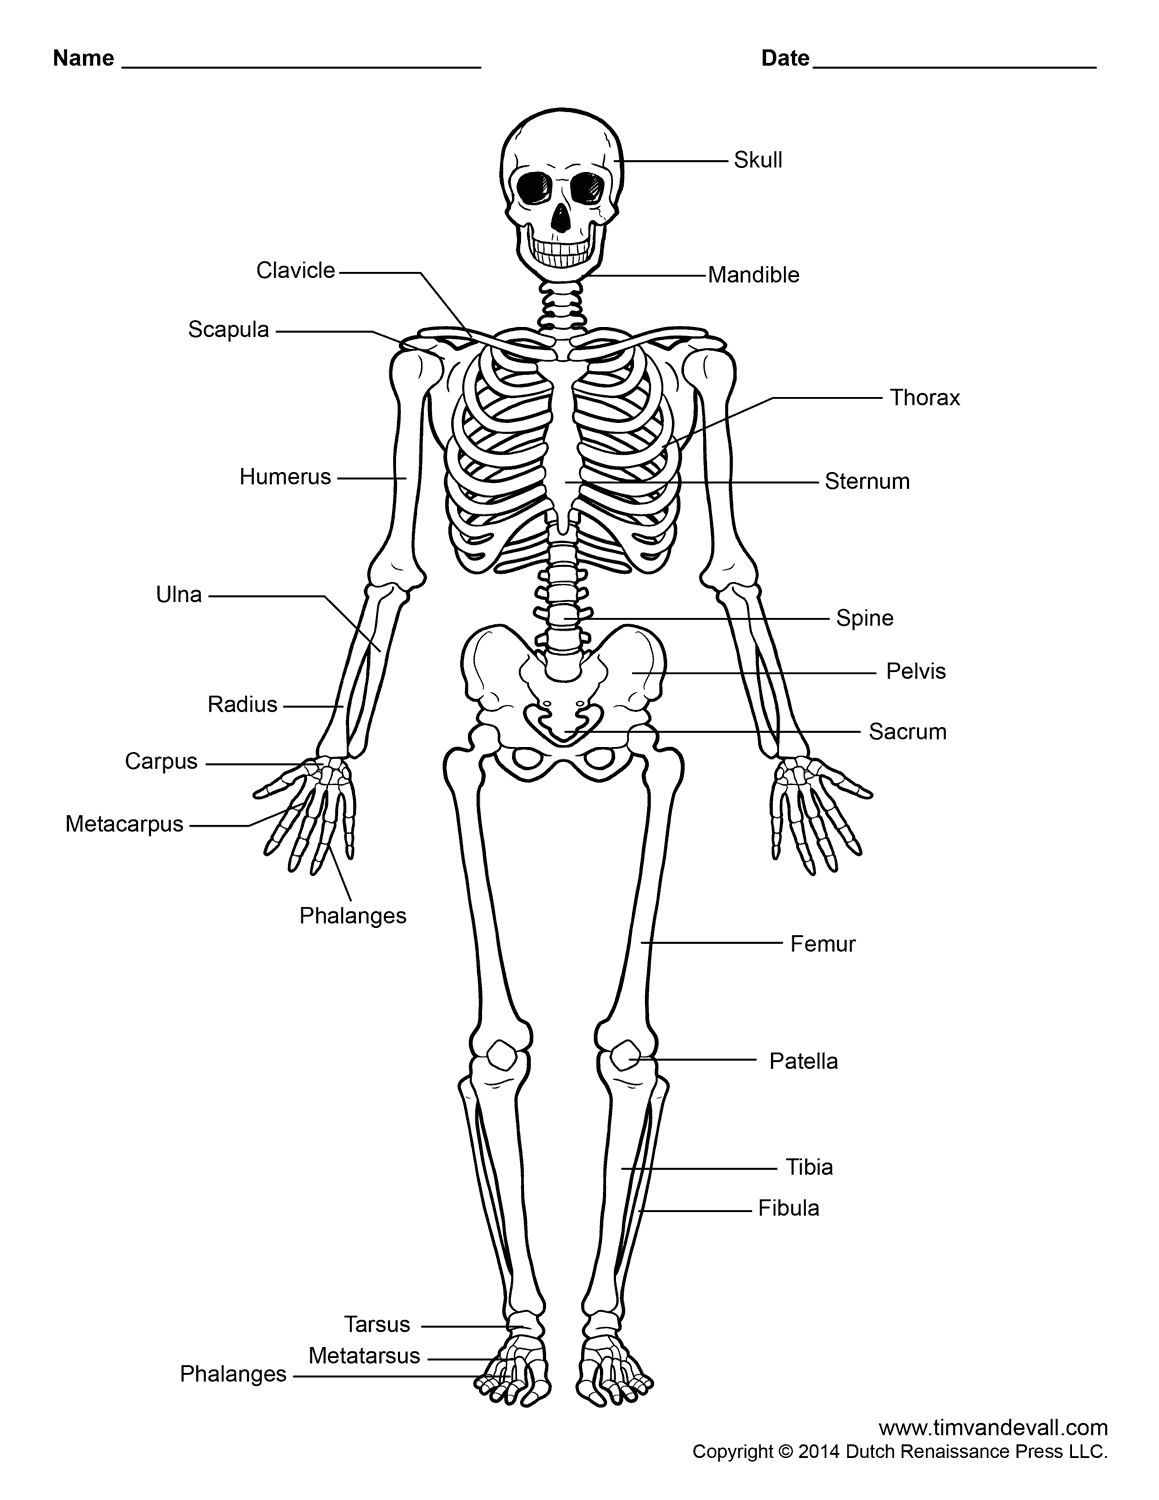 The Best Free Skeletal Drawing Images Download From 260